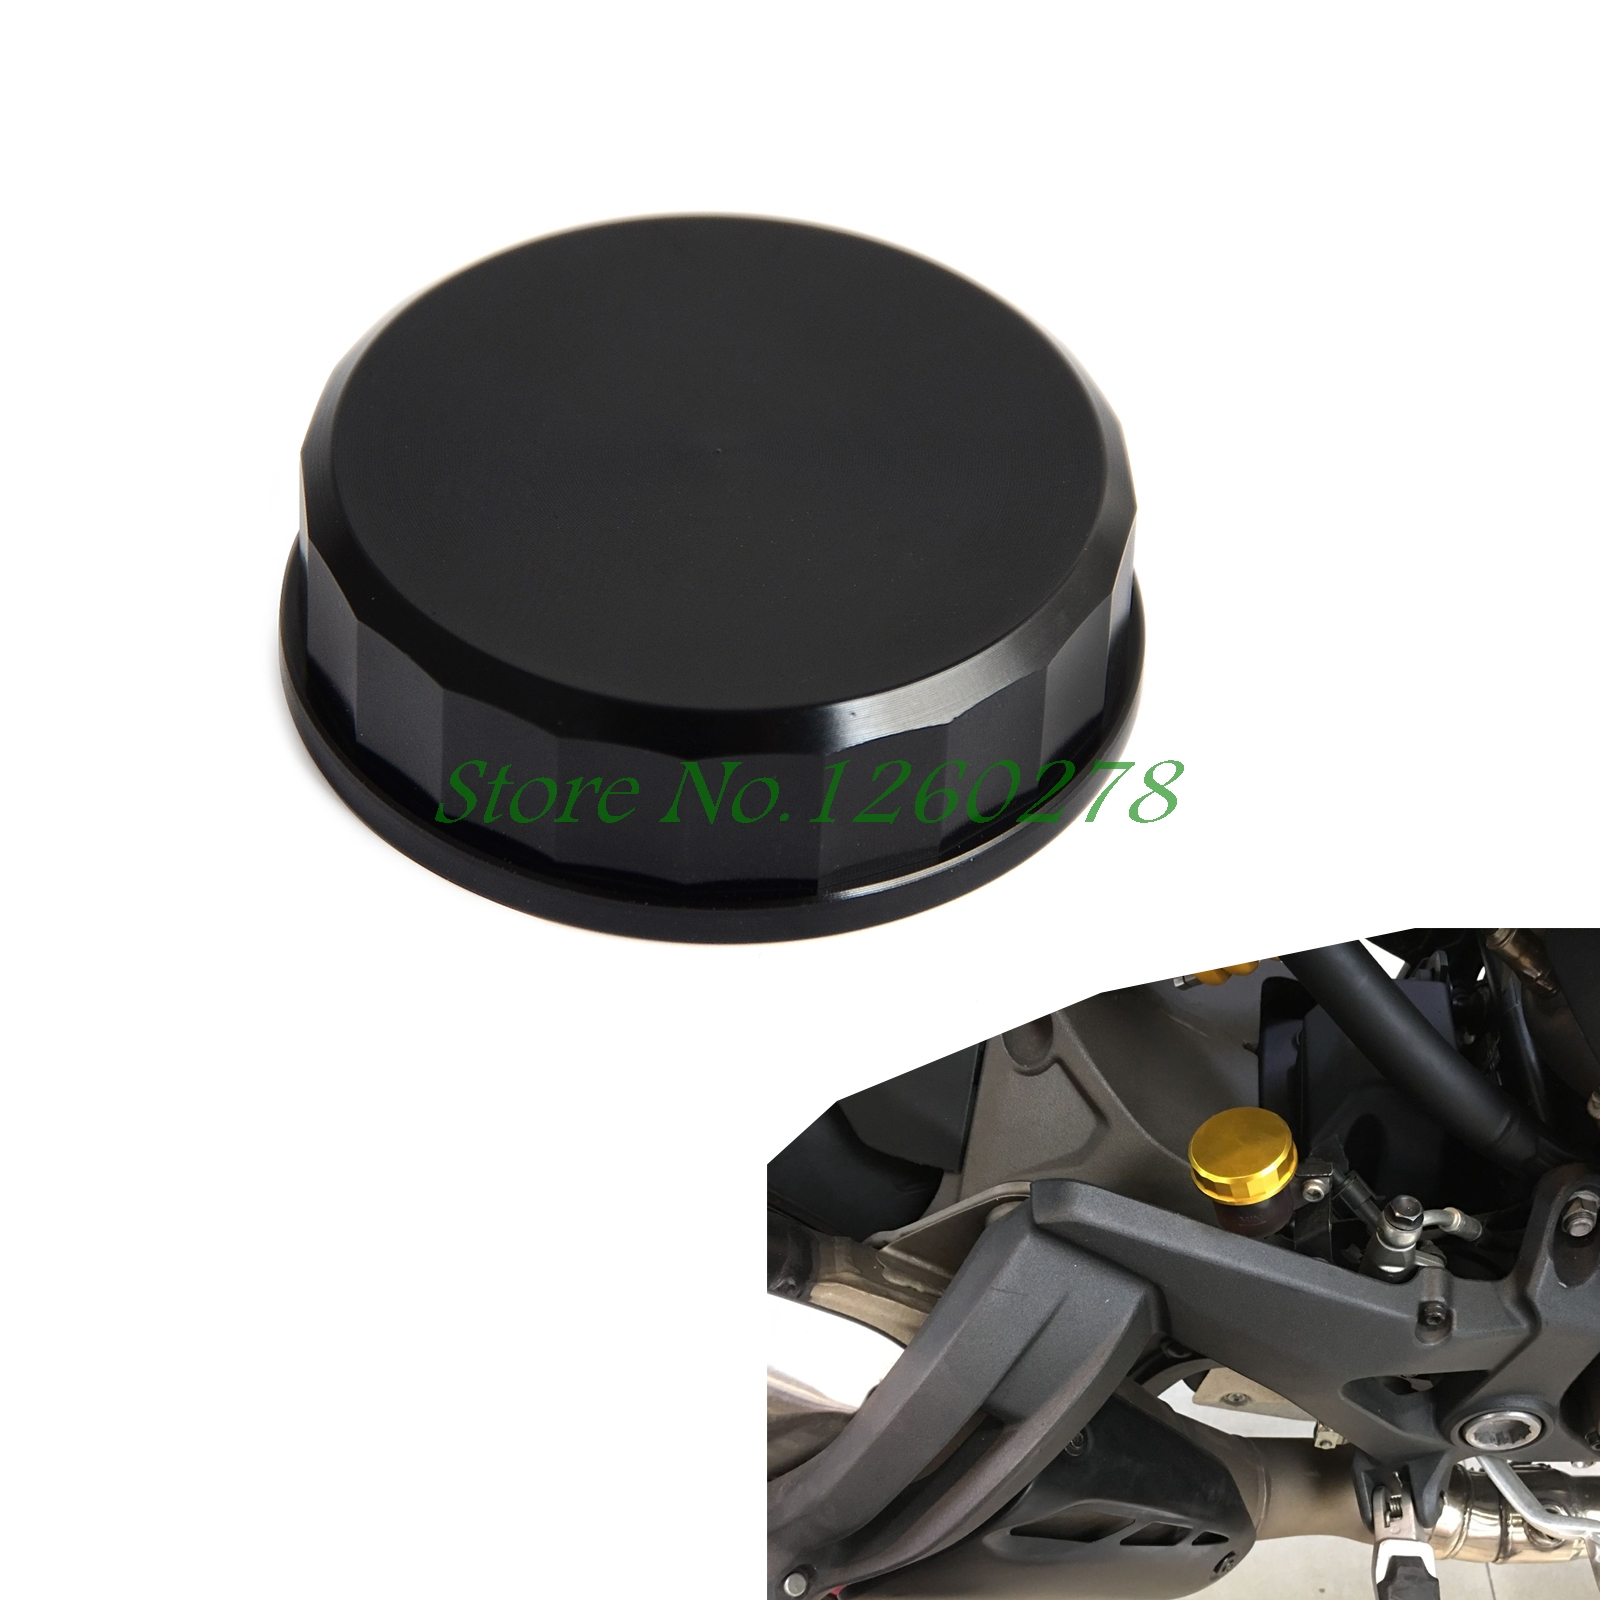 freio traseiro cilindro mestre reservoir cap para hypermotard freio traseiro cilindro mestre reservoir cap para hypermotard ducati monster multistrada supersport st3 st4 620 848 696 1000 1200 fandeluxe Images